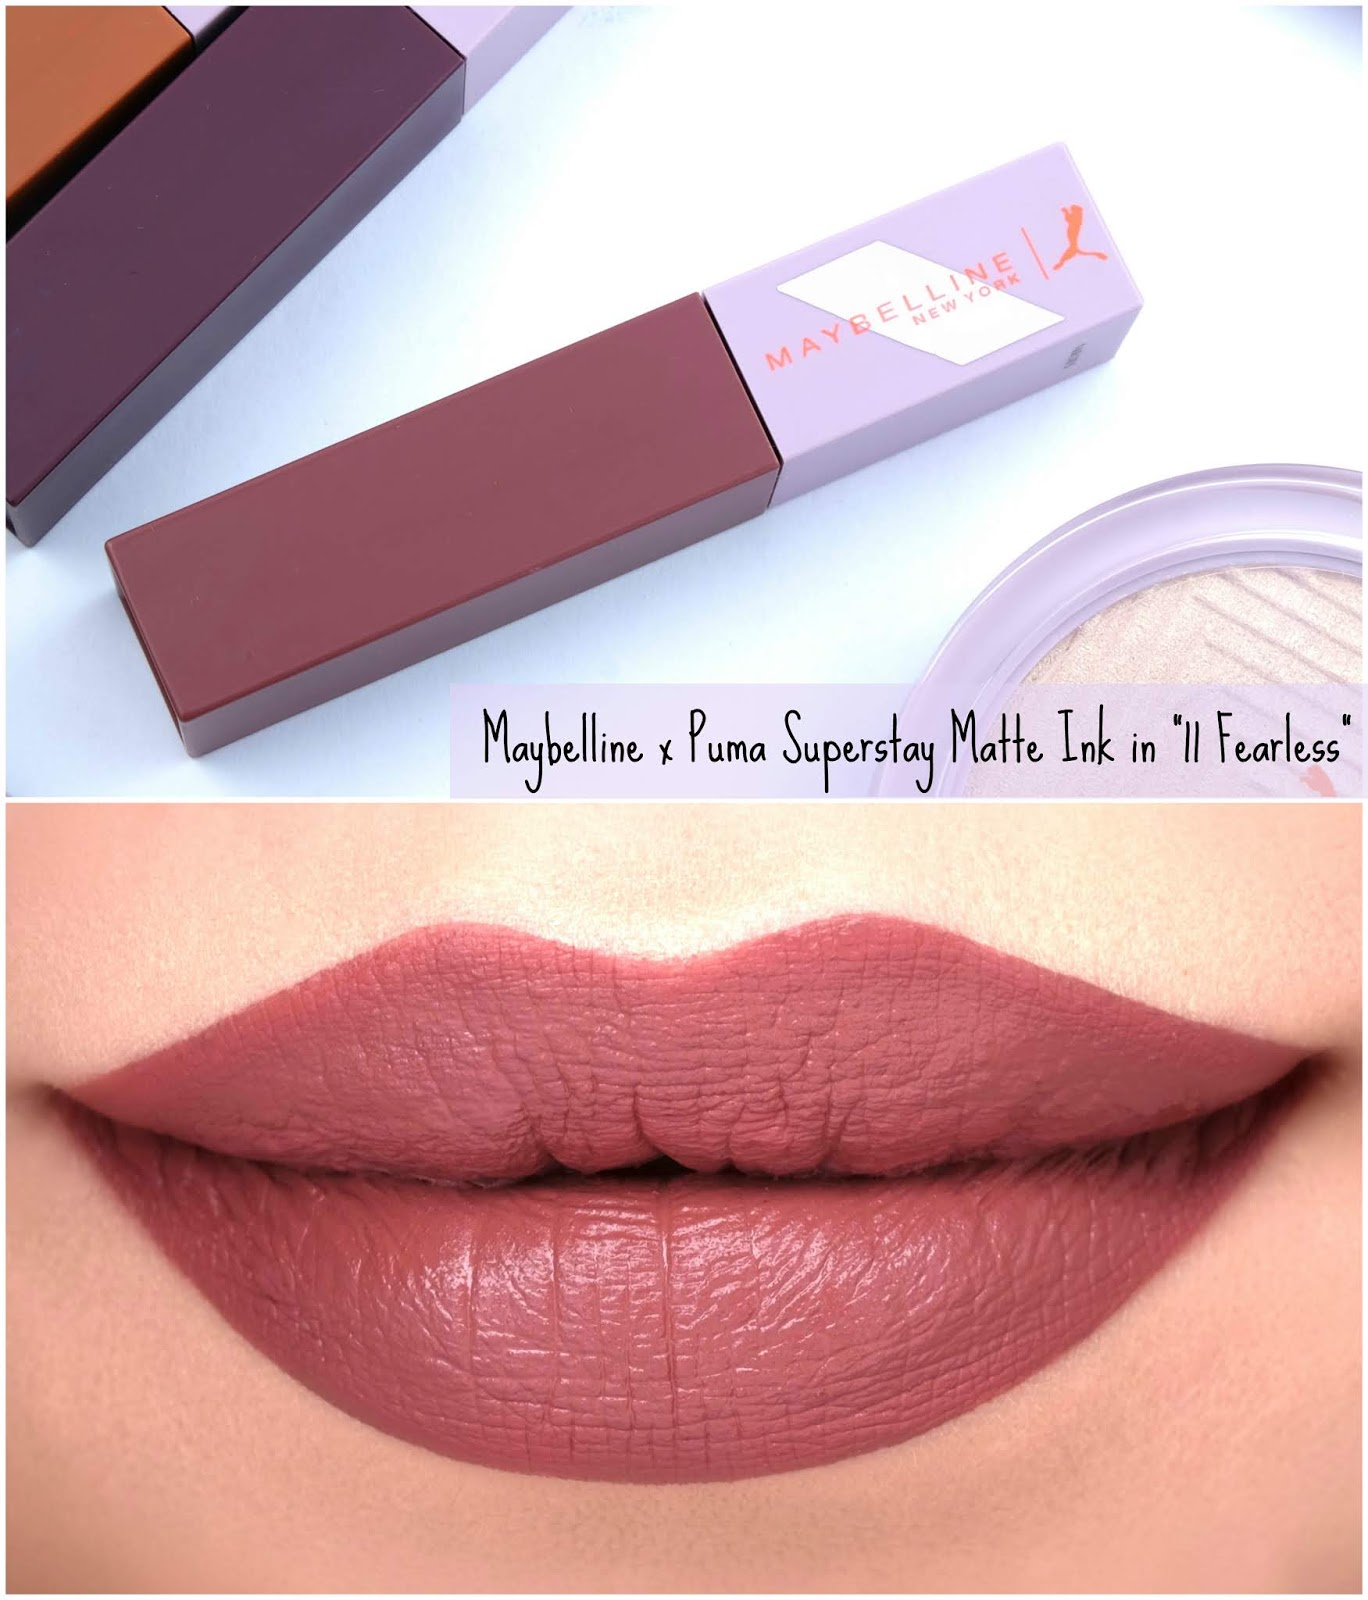 "Maybelline | Maybelline x Puma Superstay Matte Ink in ""11 Fearless"": Review and Swatches"